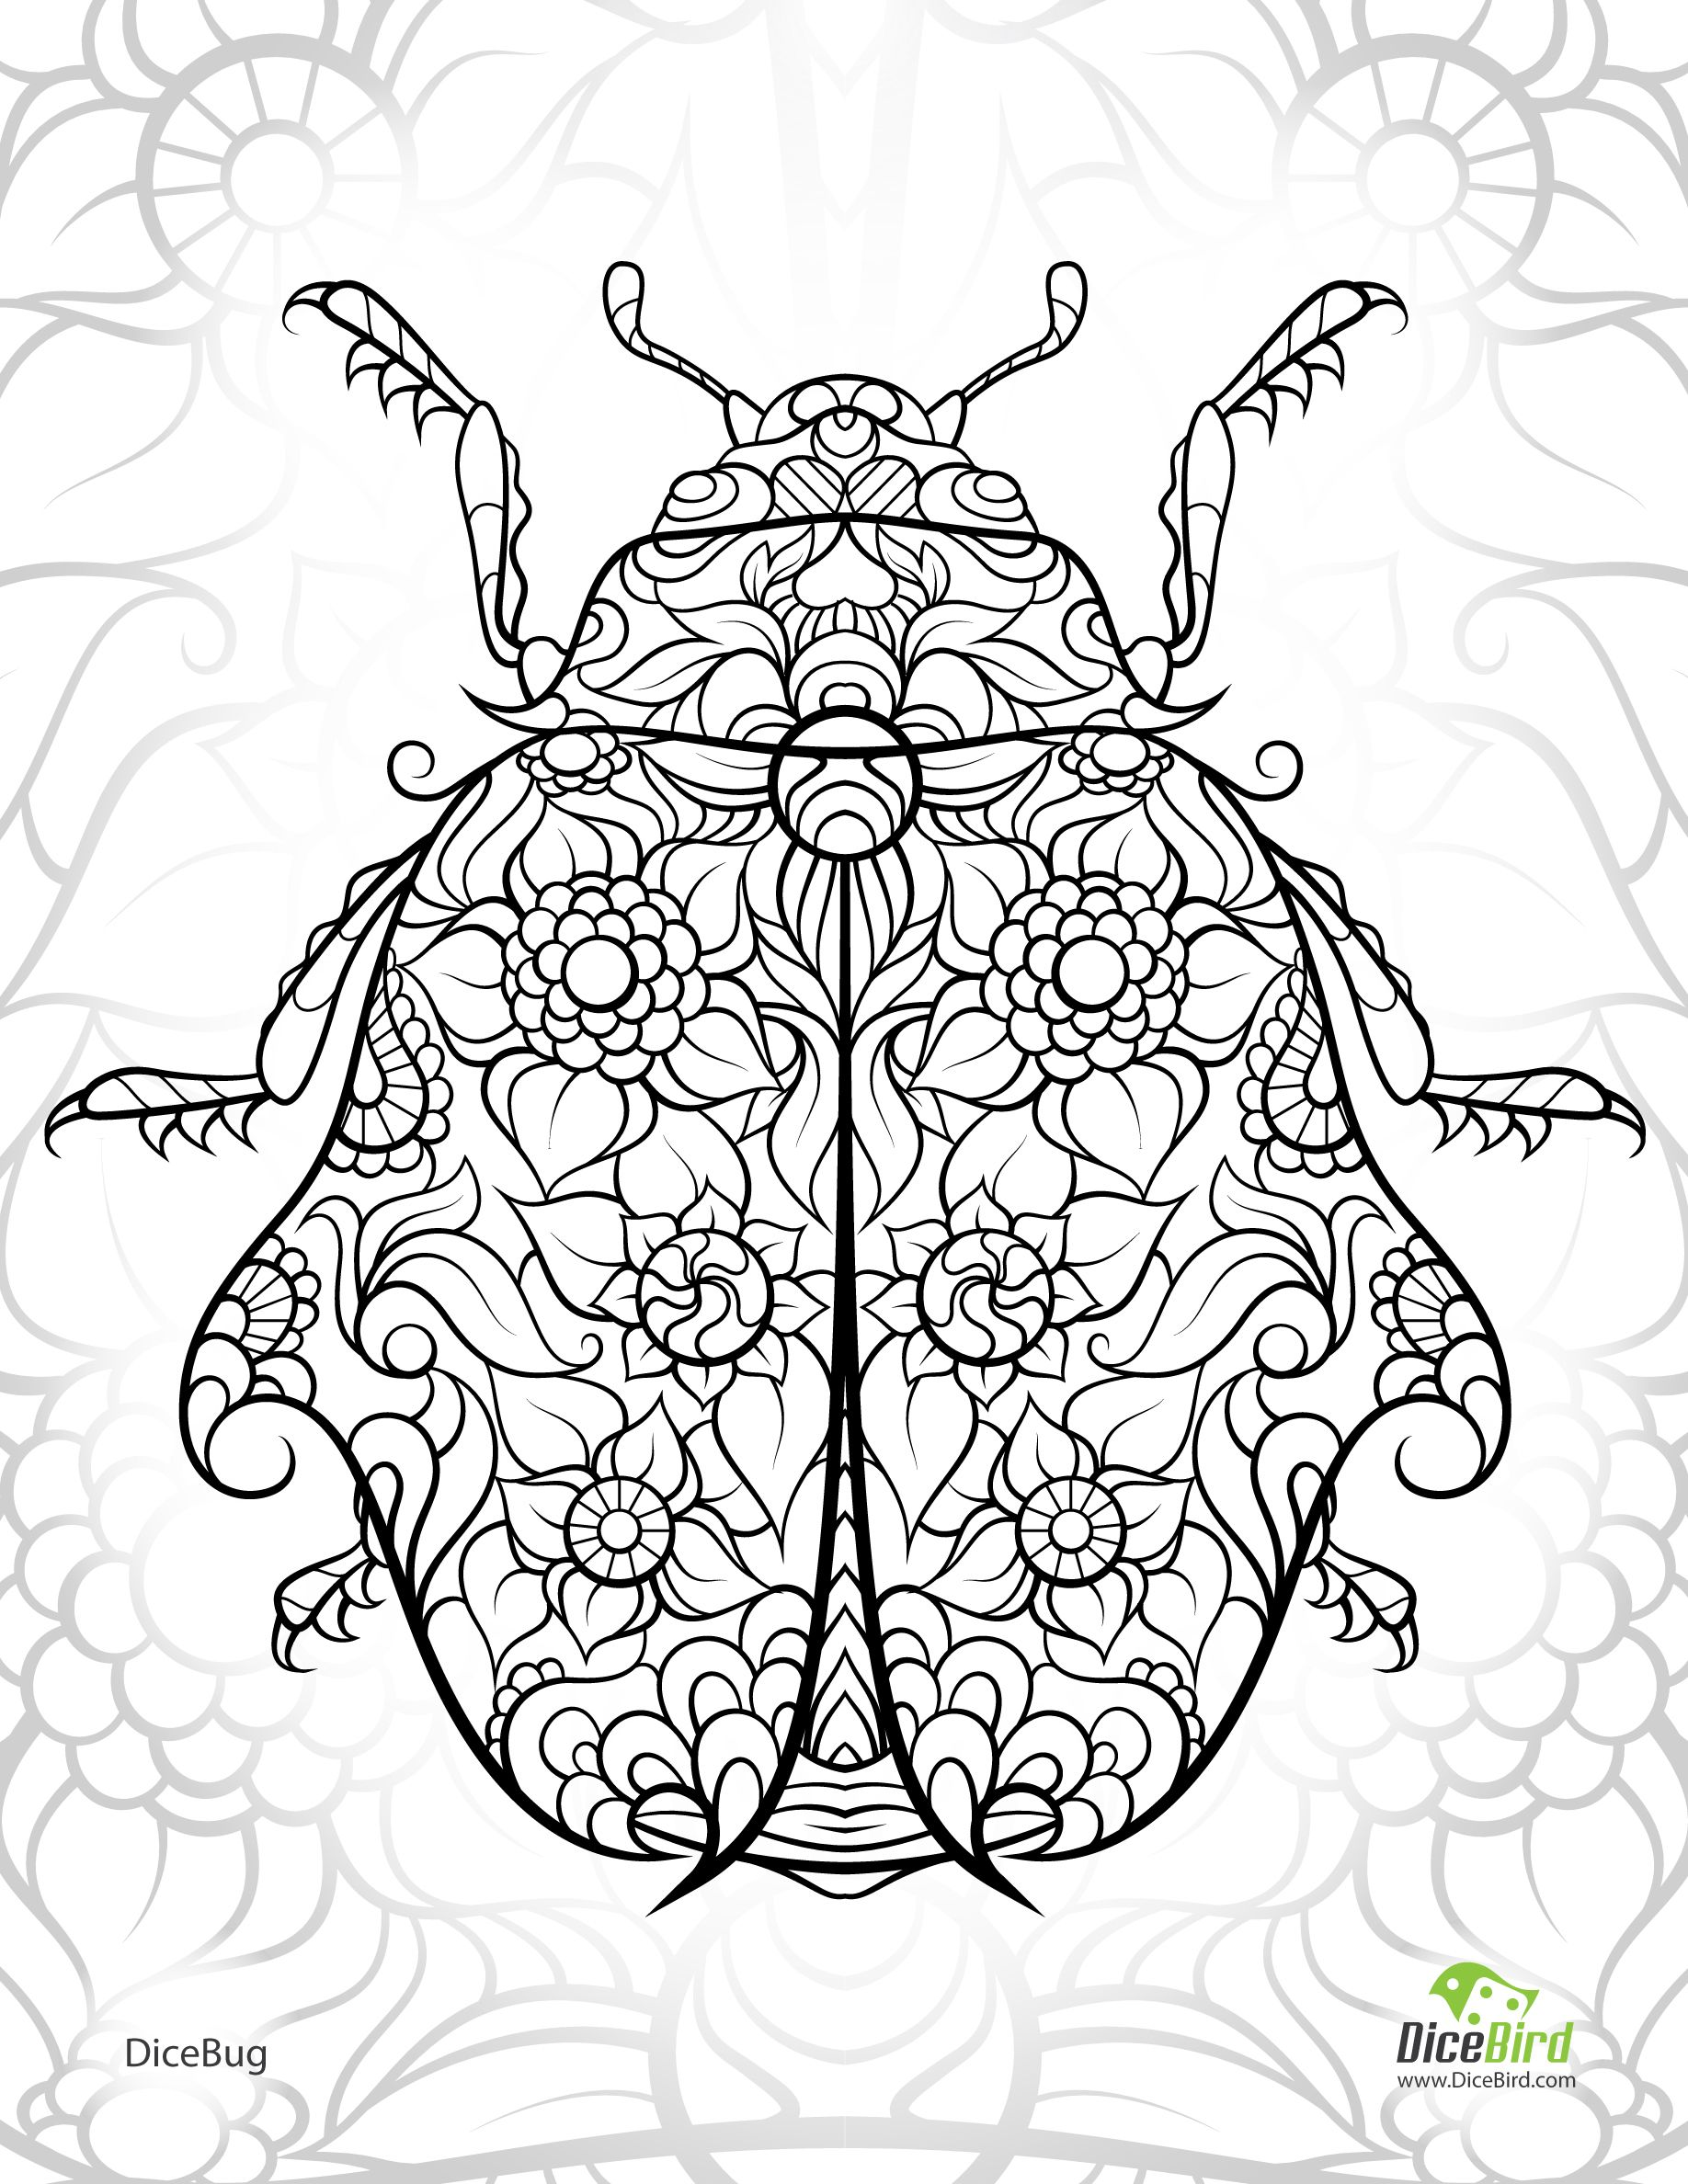 Free Printable Adult Coloring Page from